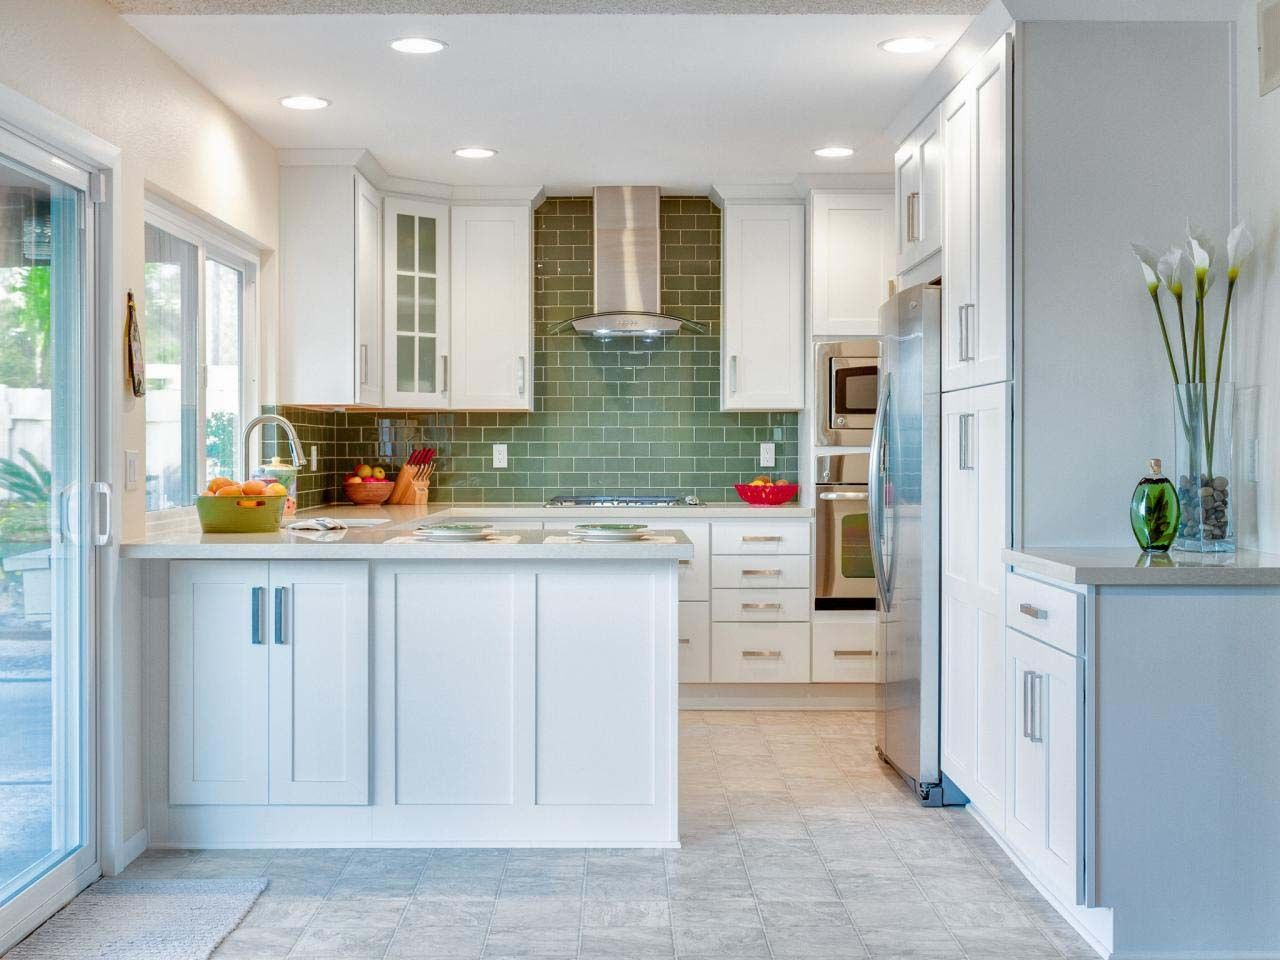 Remodeling A Small Kitchen To Look Bigger   Creating A Practical Layout Is  Vital When Planning